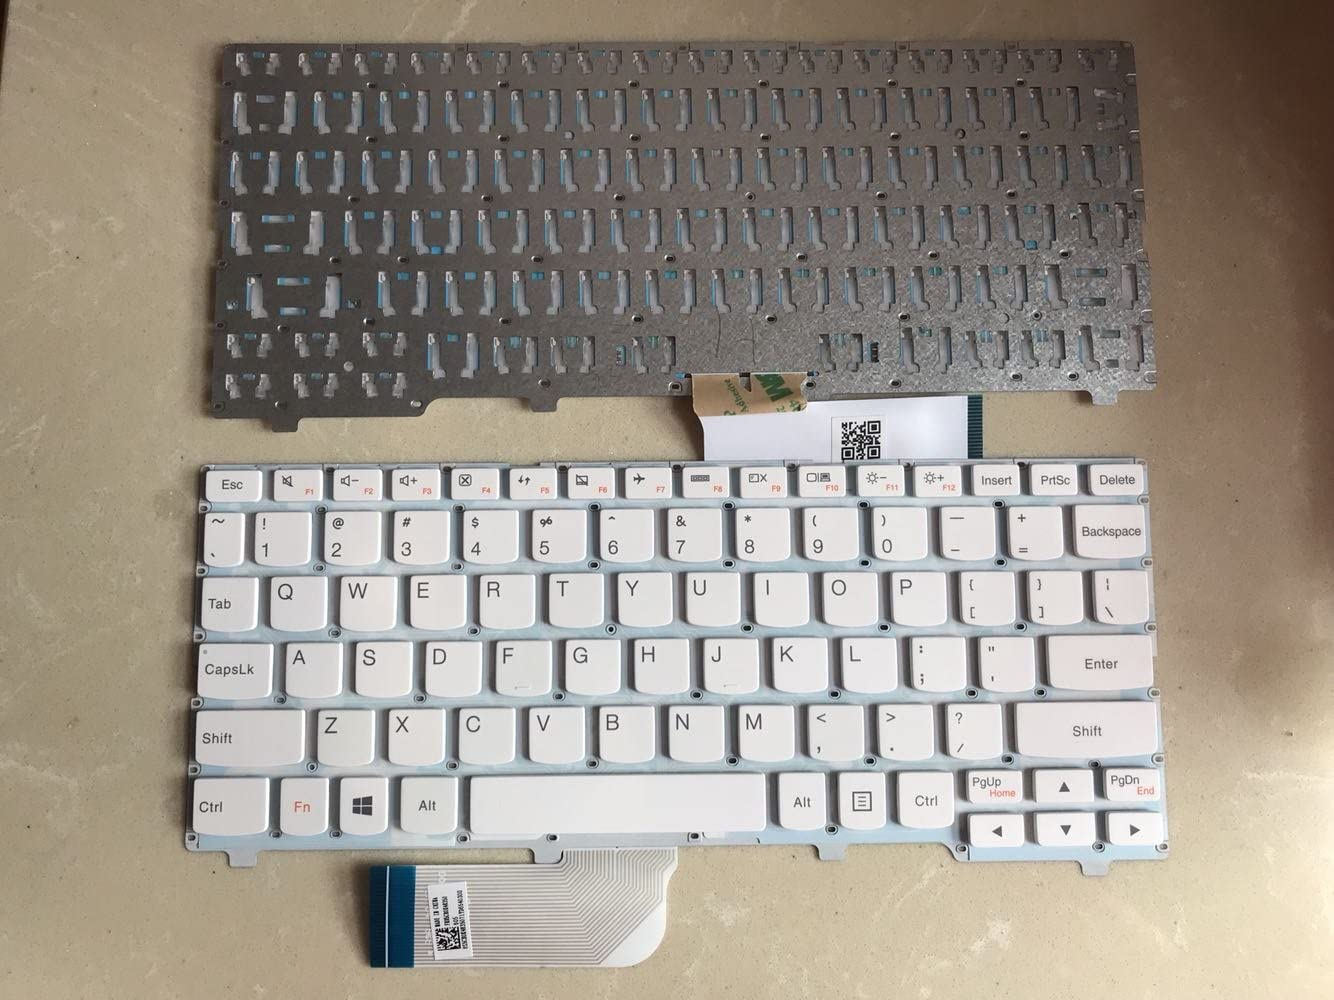 Replacement Keyboard Without Frame For Lenovo Ideapad 100S-11IBY 100S-11IBY - Type 80R2, US Layout White Color